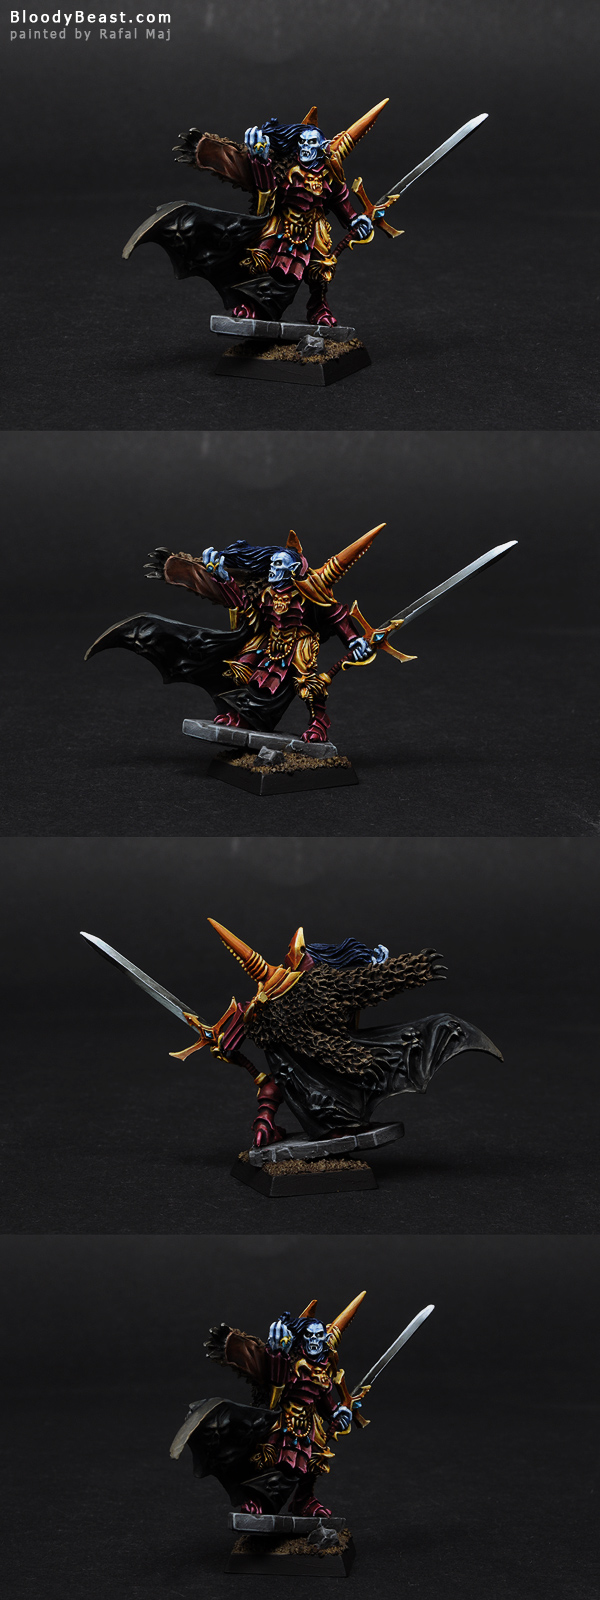 Vampire Counts Vlad Von Carstein painted by Rafal Maj (BloodyBeast.com)